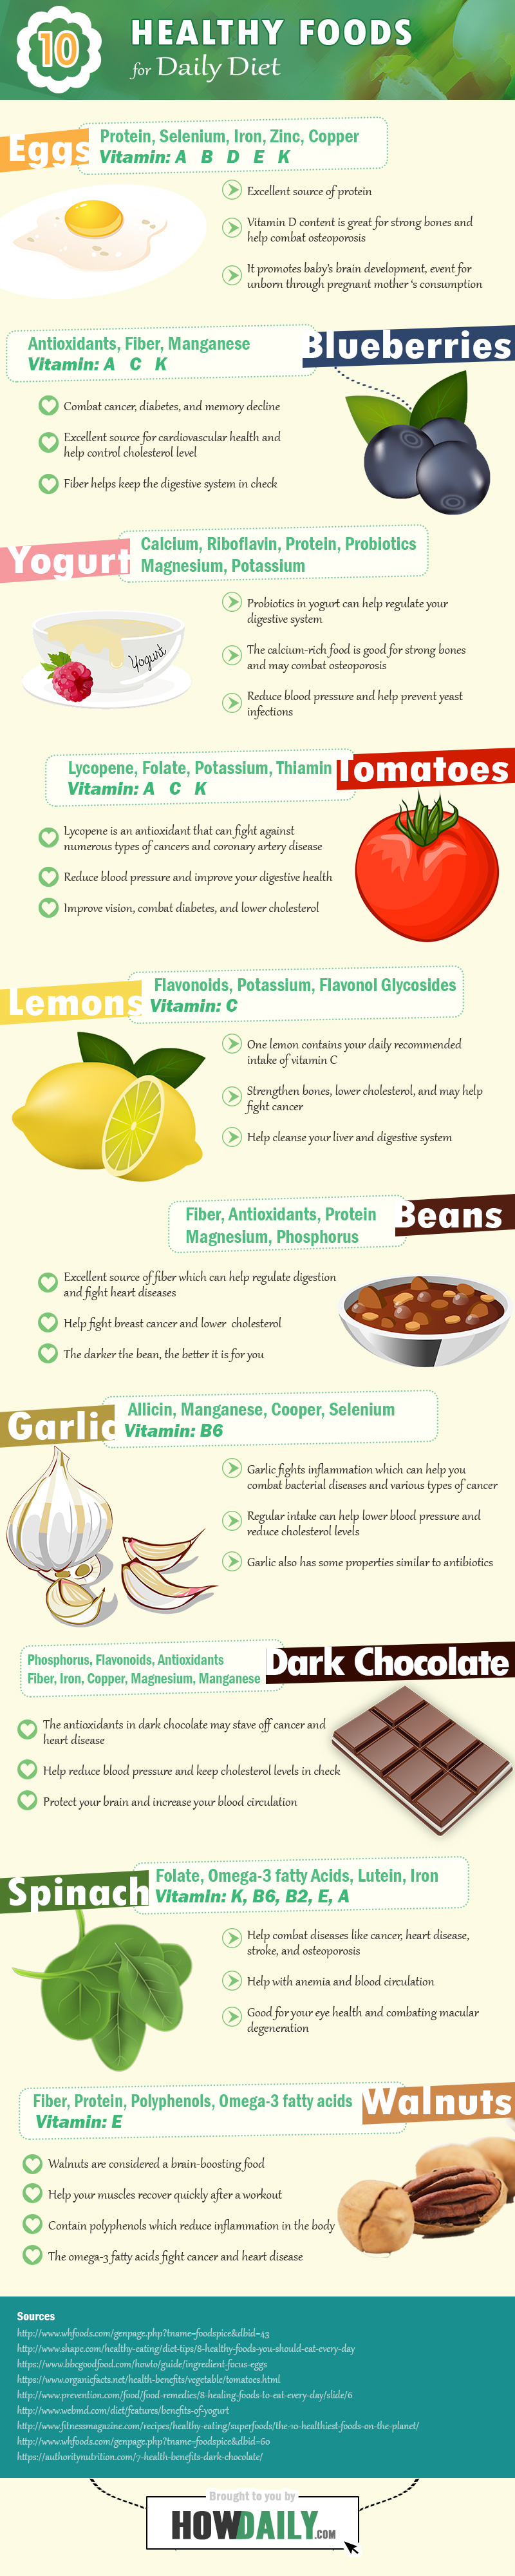 Infographic 10 healthy foods for daily diet